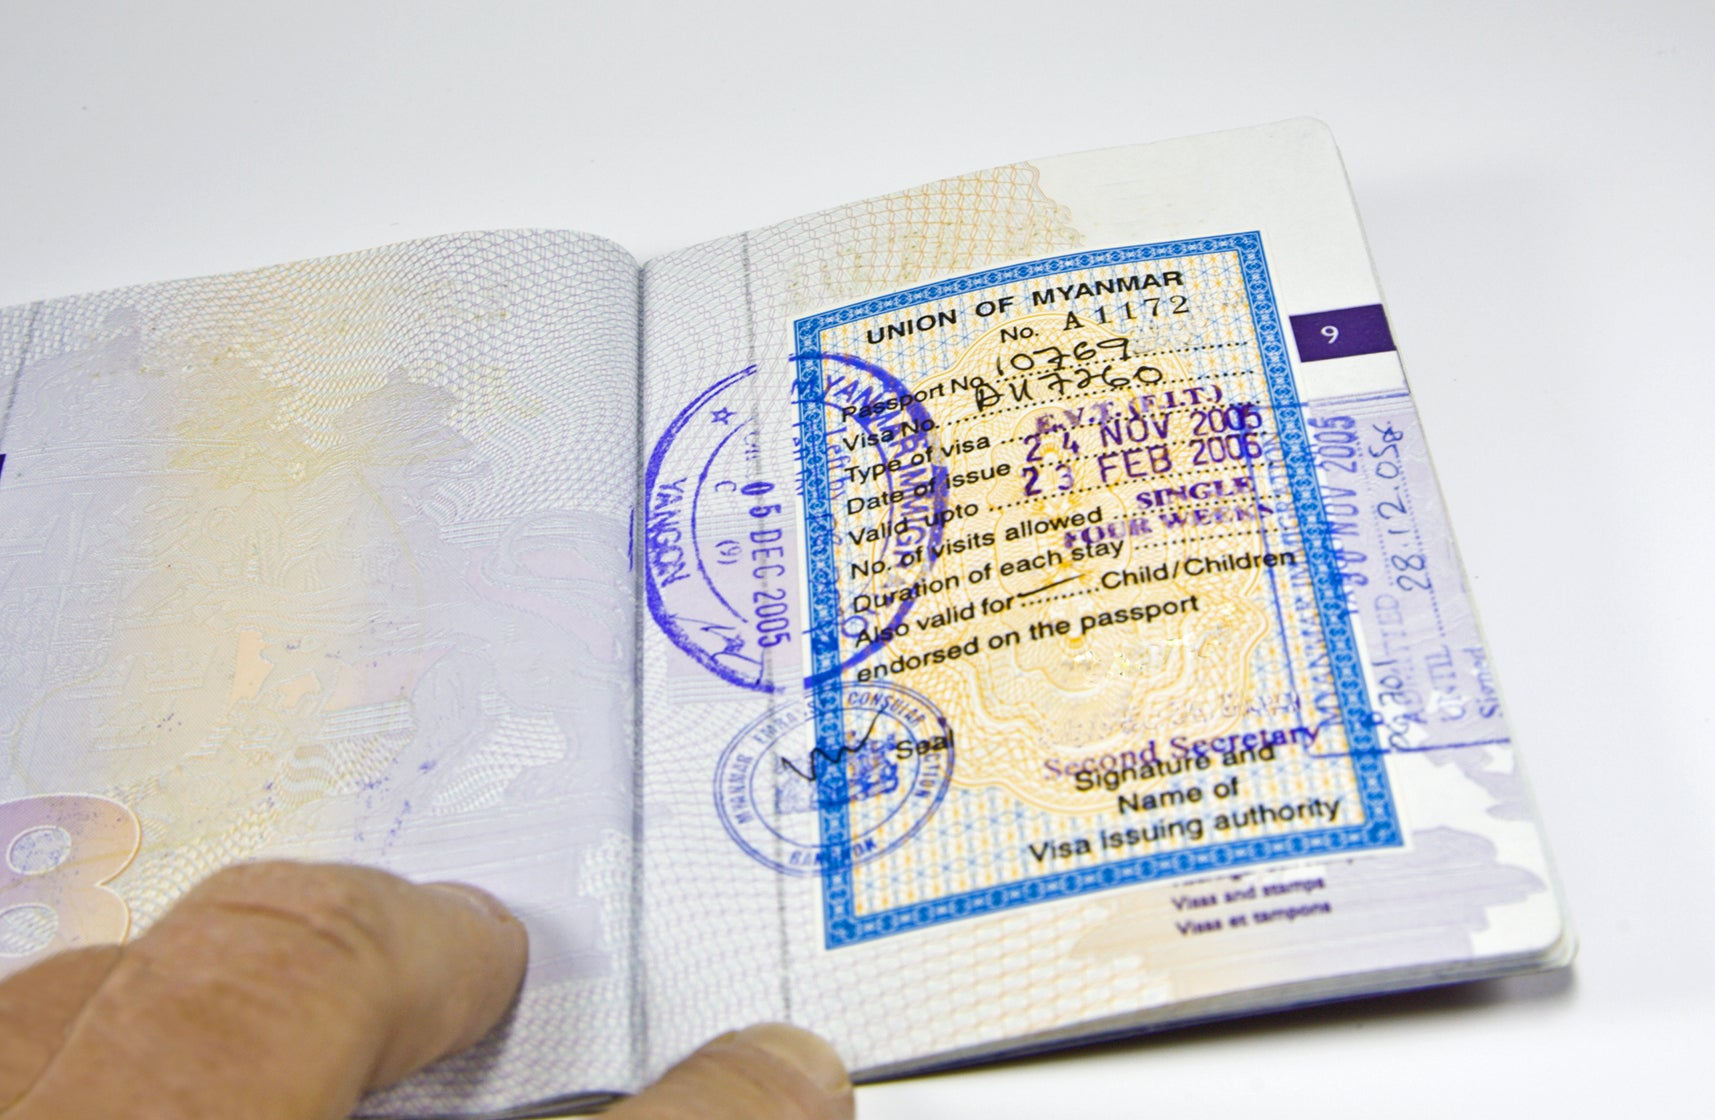 7 Destinations Where US Citizens Have to Obtain a Visa Before Arrival